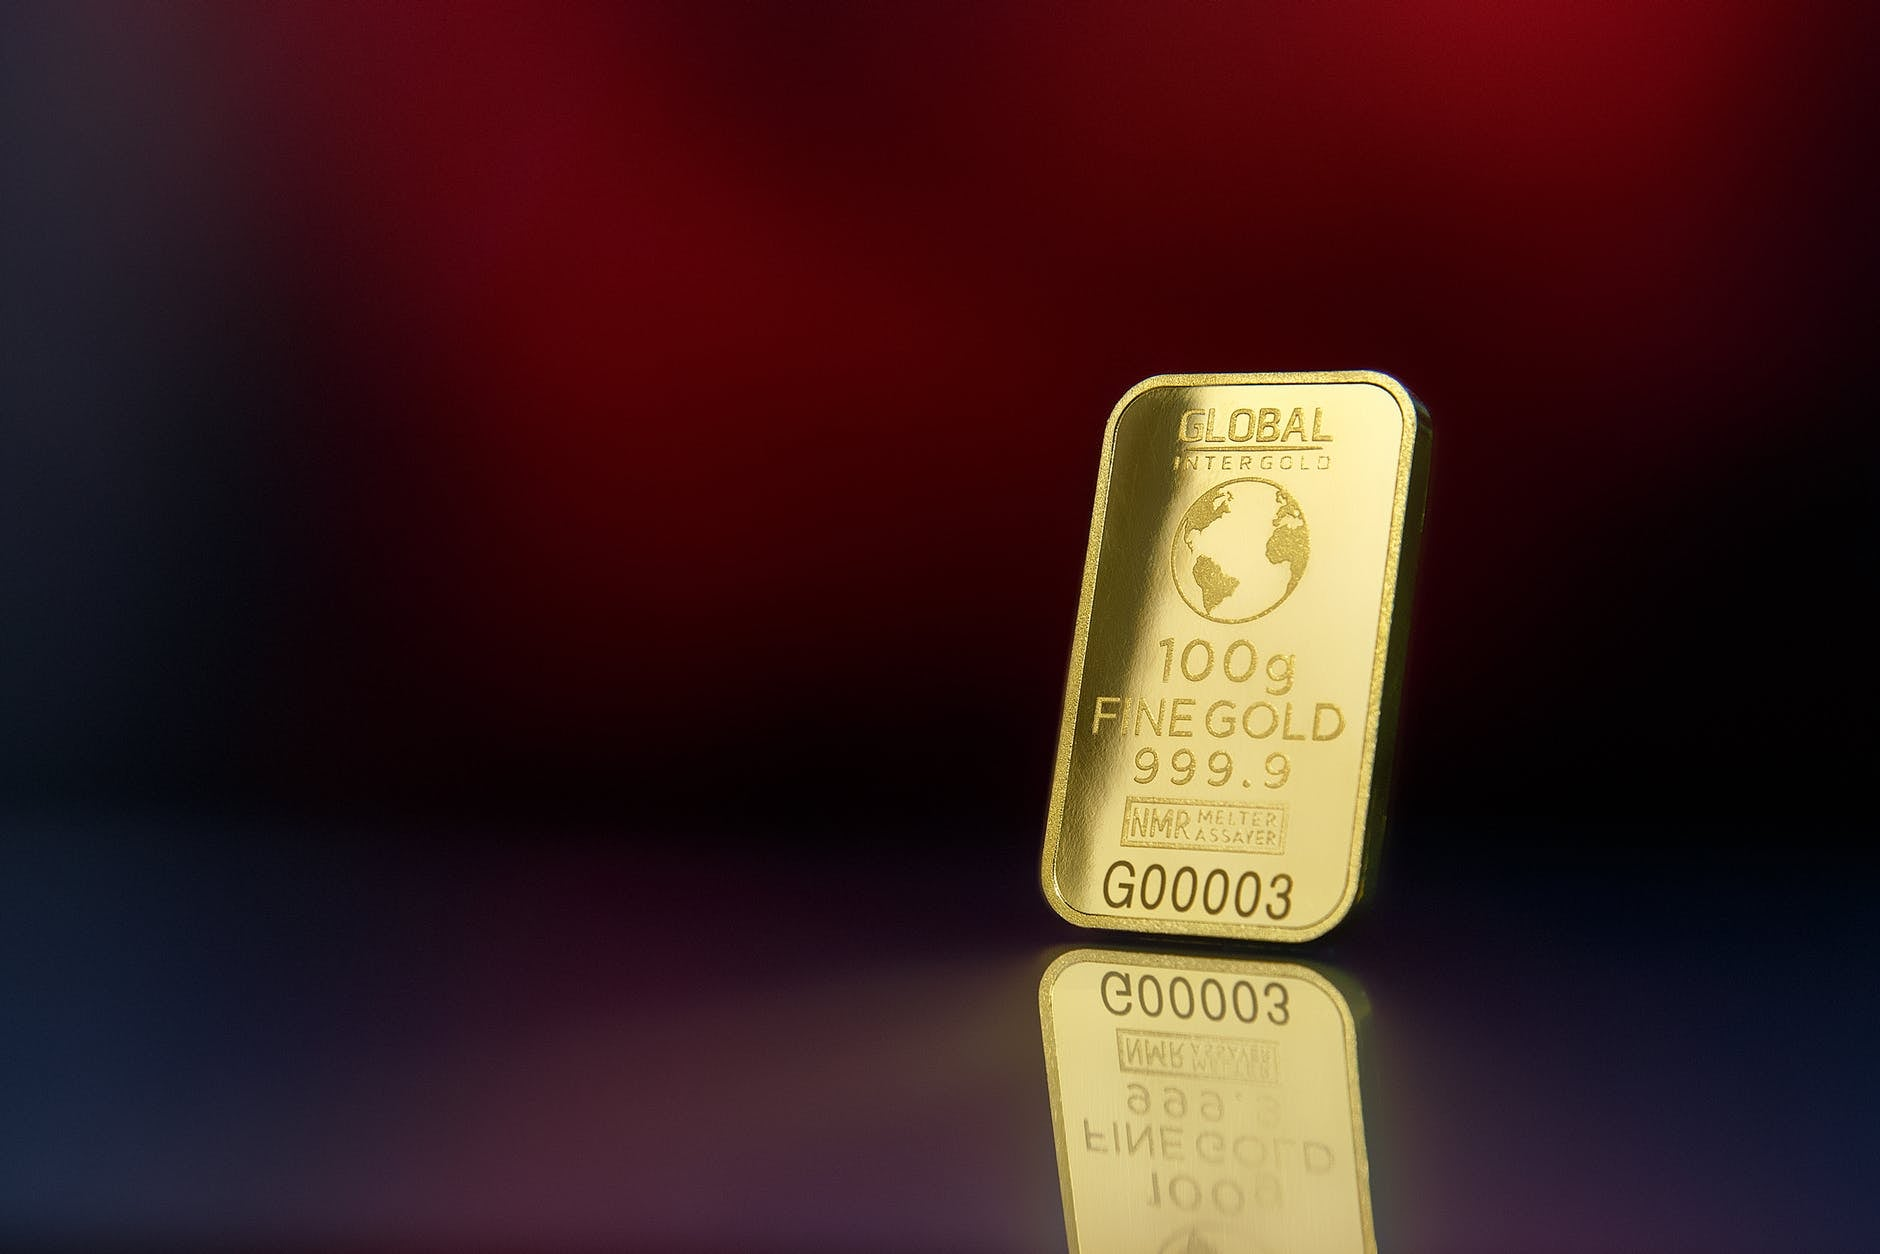 Gold Miners Bull 2x Shares Etf